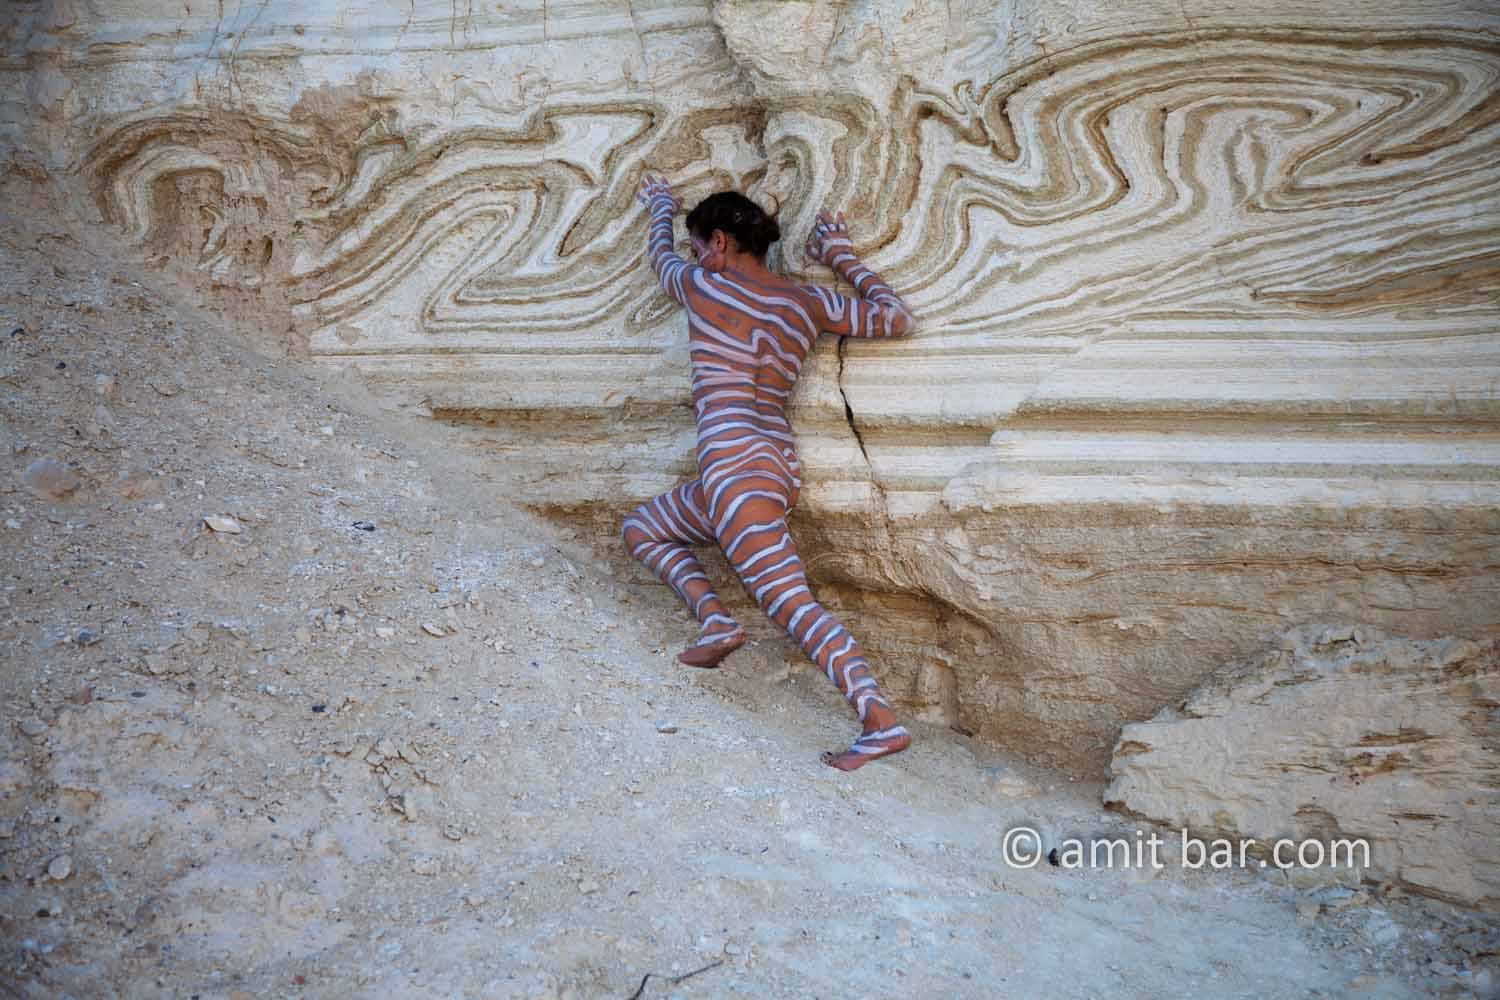 Nachal Prazim I: Body painted model at the desert of the Dead Sea, Israel.